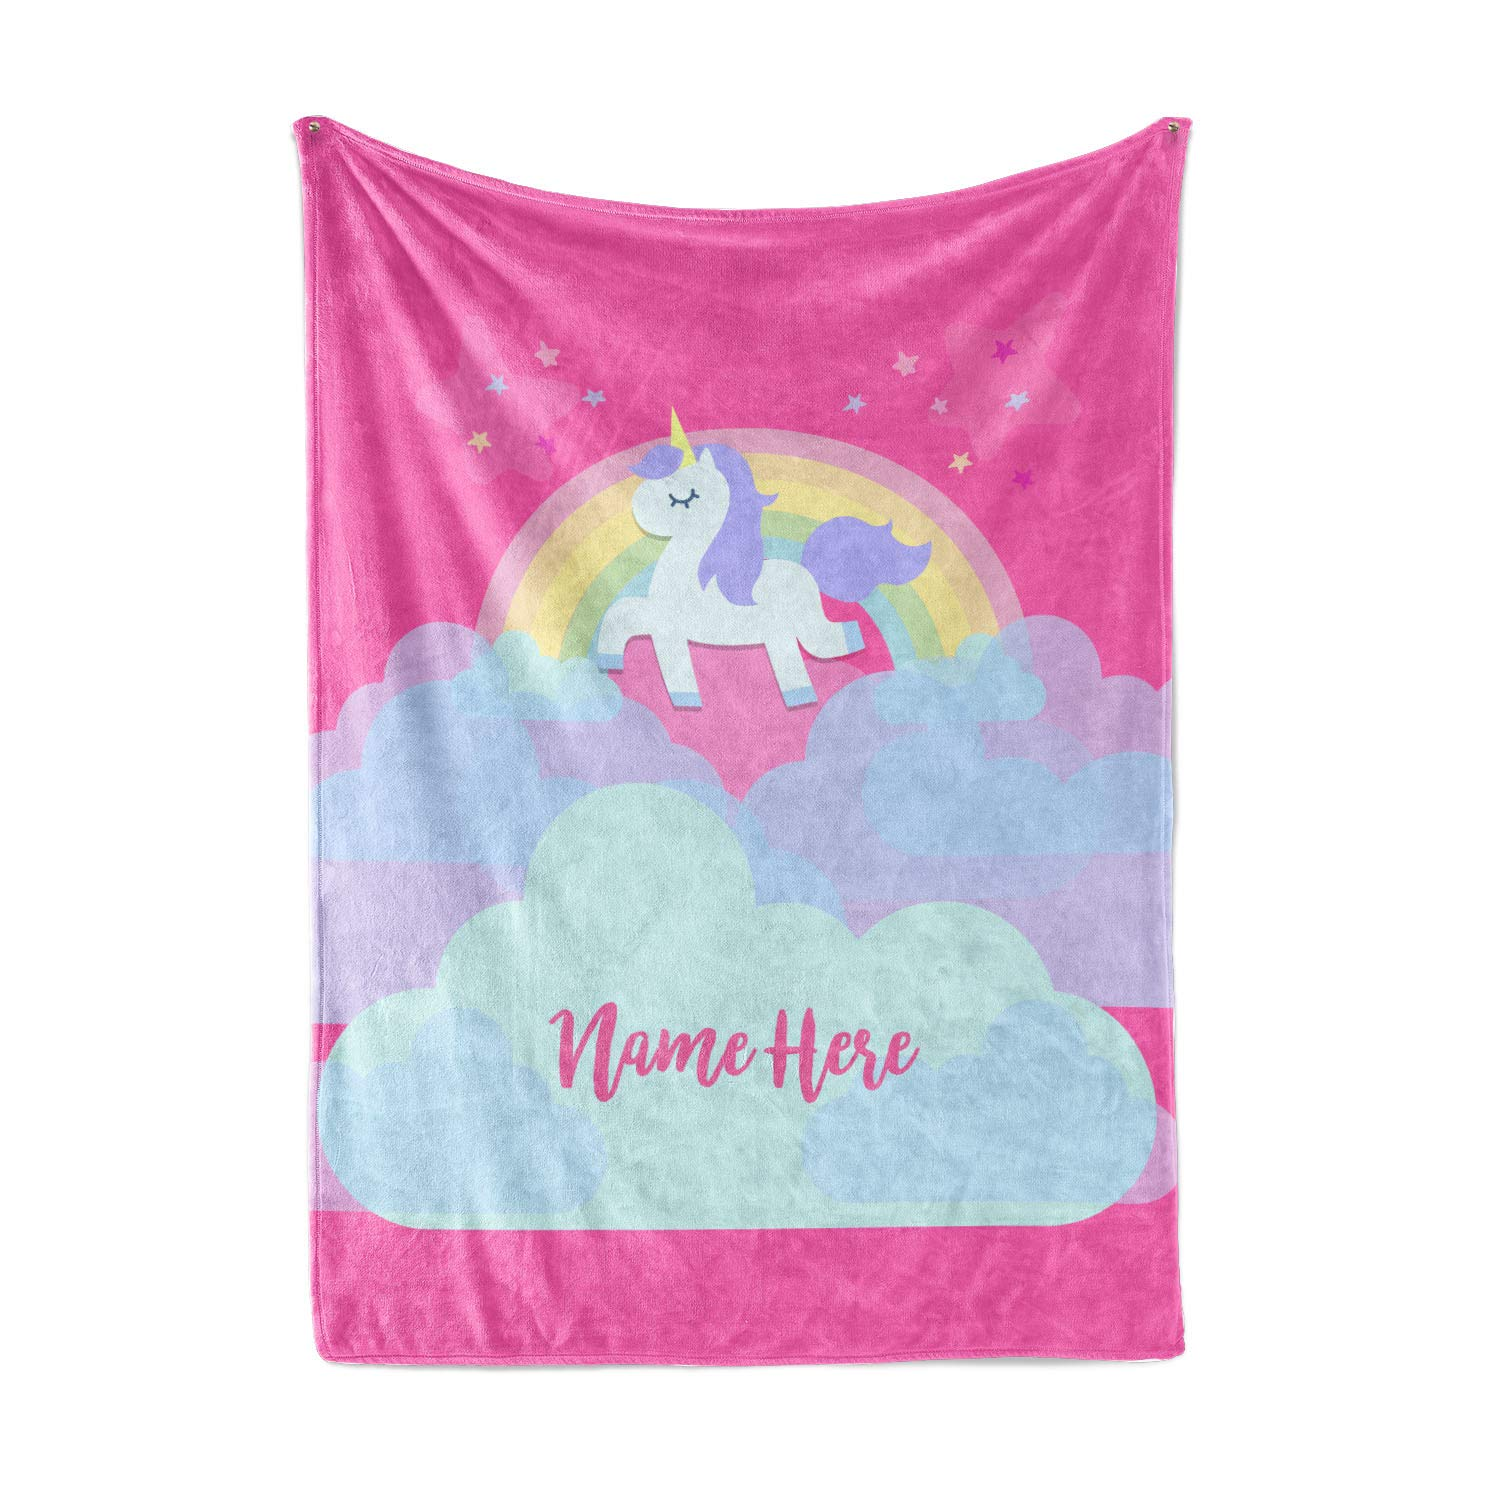 Personalized Magical Rainbow Unicorn Blanket for Kids, Teens, Girls, Women, Baby, Adult - Cute Pink Mink Fleece Plush Sherpa Throw Blankets Perfect as Cozy Comfy Presents (60'' x 80'' - Adult) by Personalized Corner